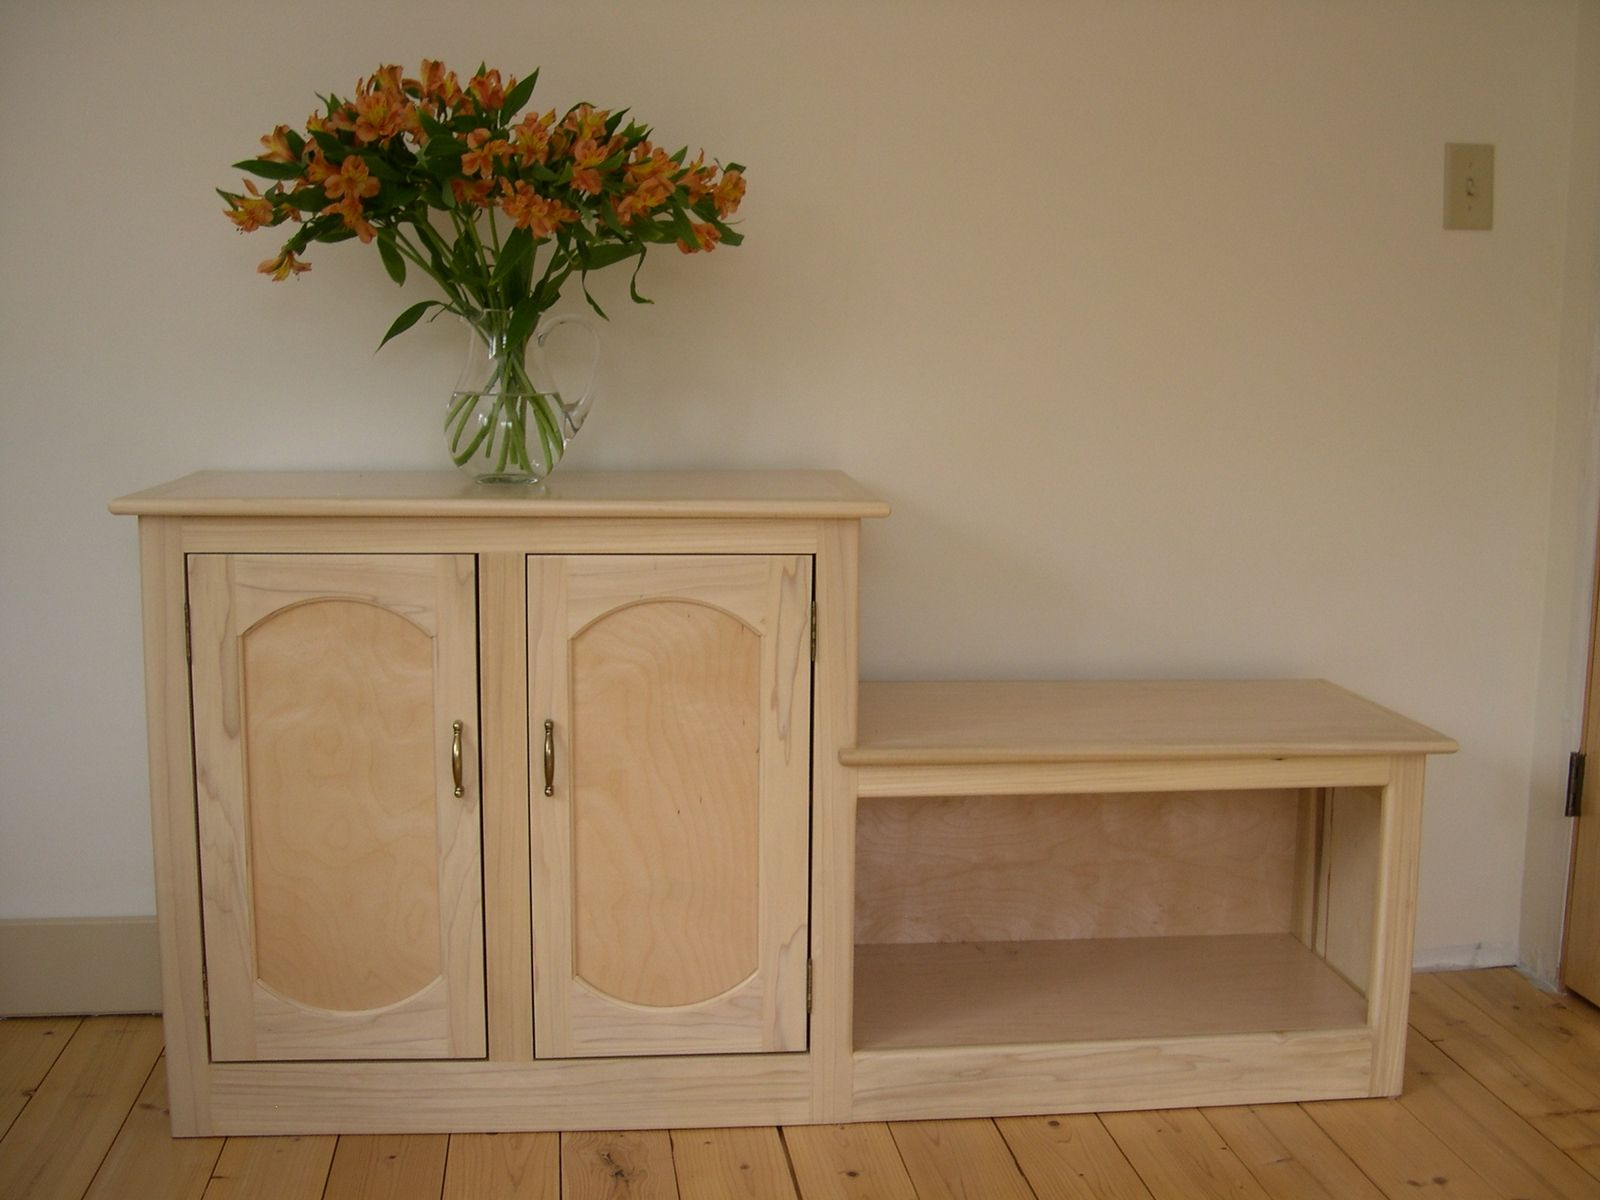 Custom entryway cabinet and bench by r e price cabinetry for Foyer cabinet design